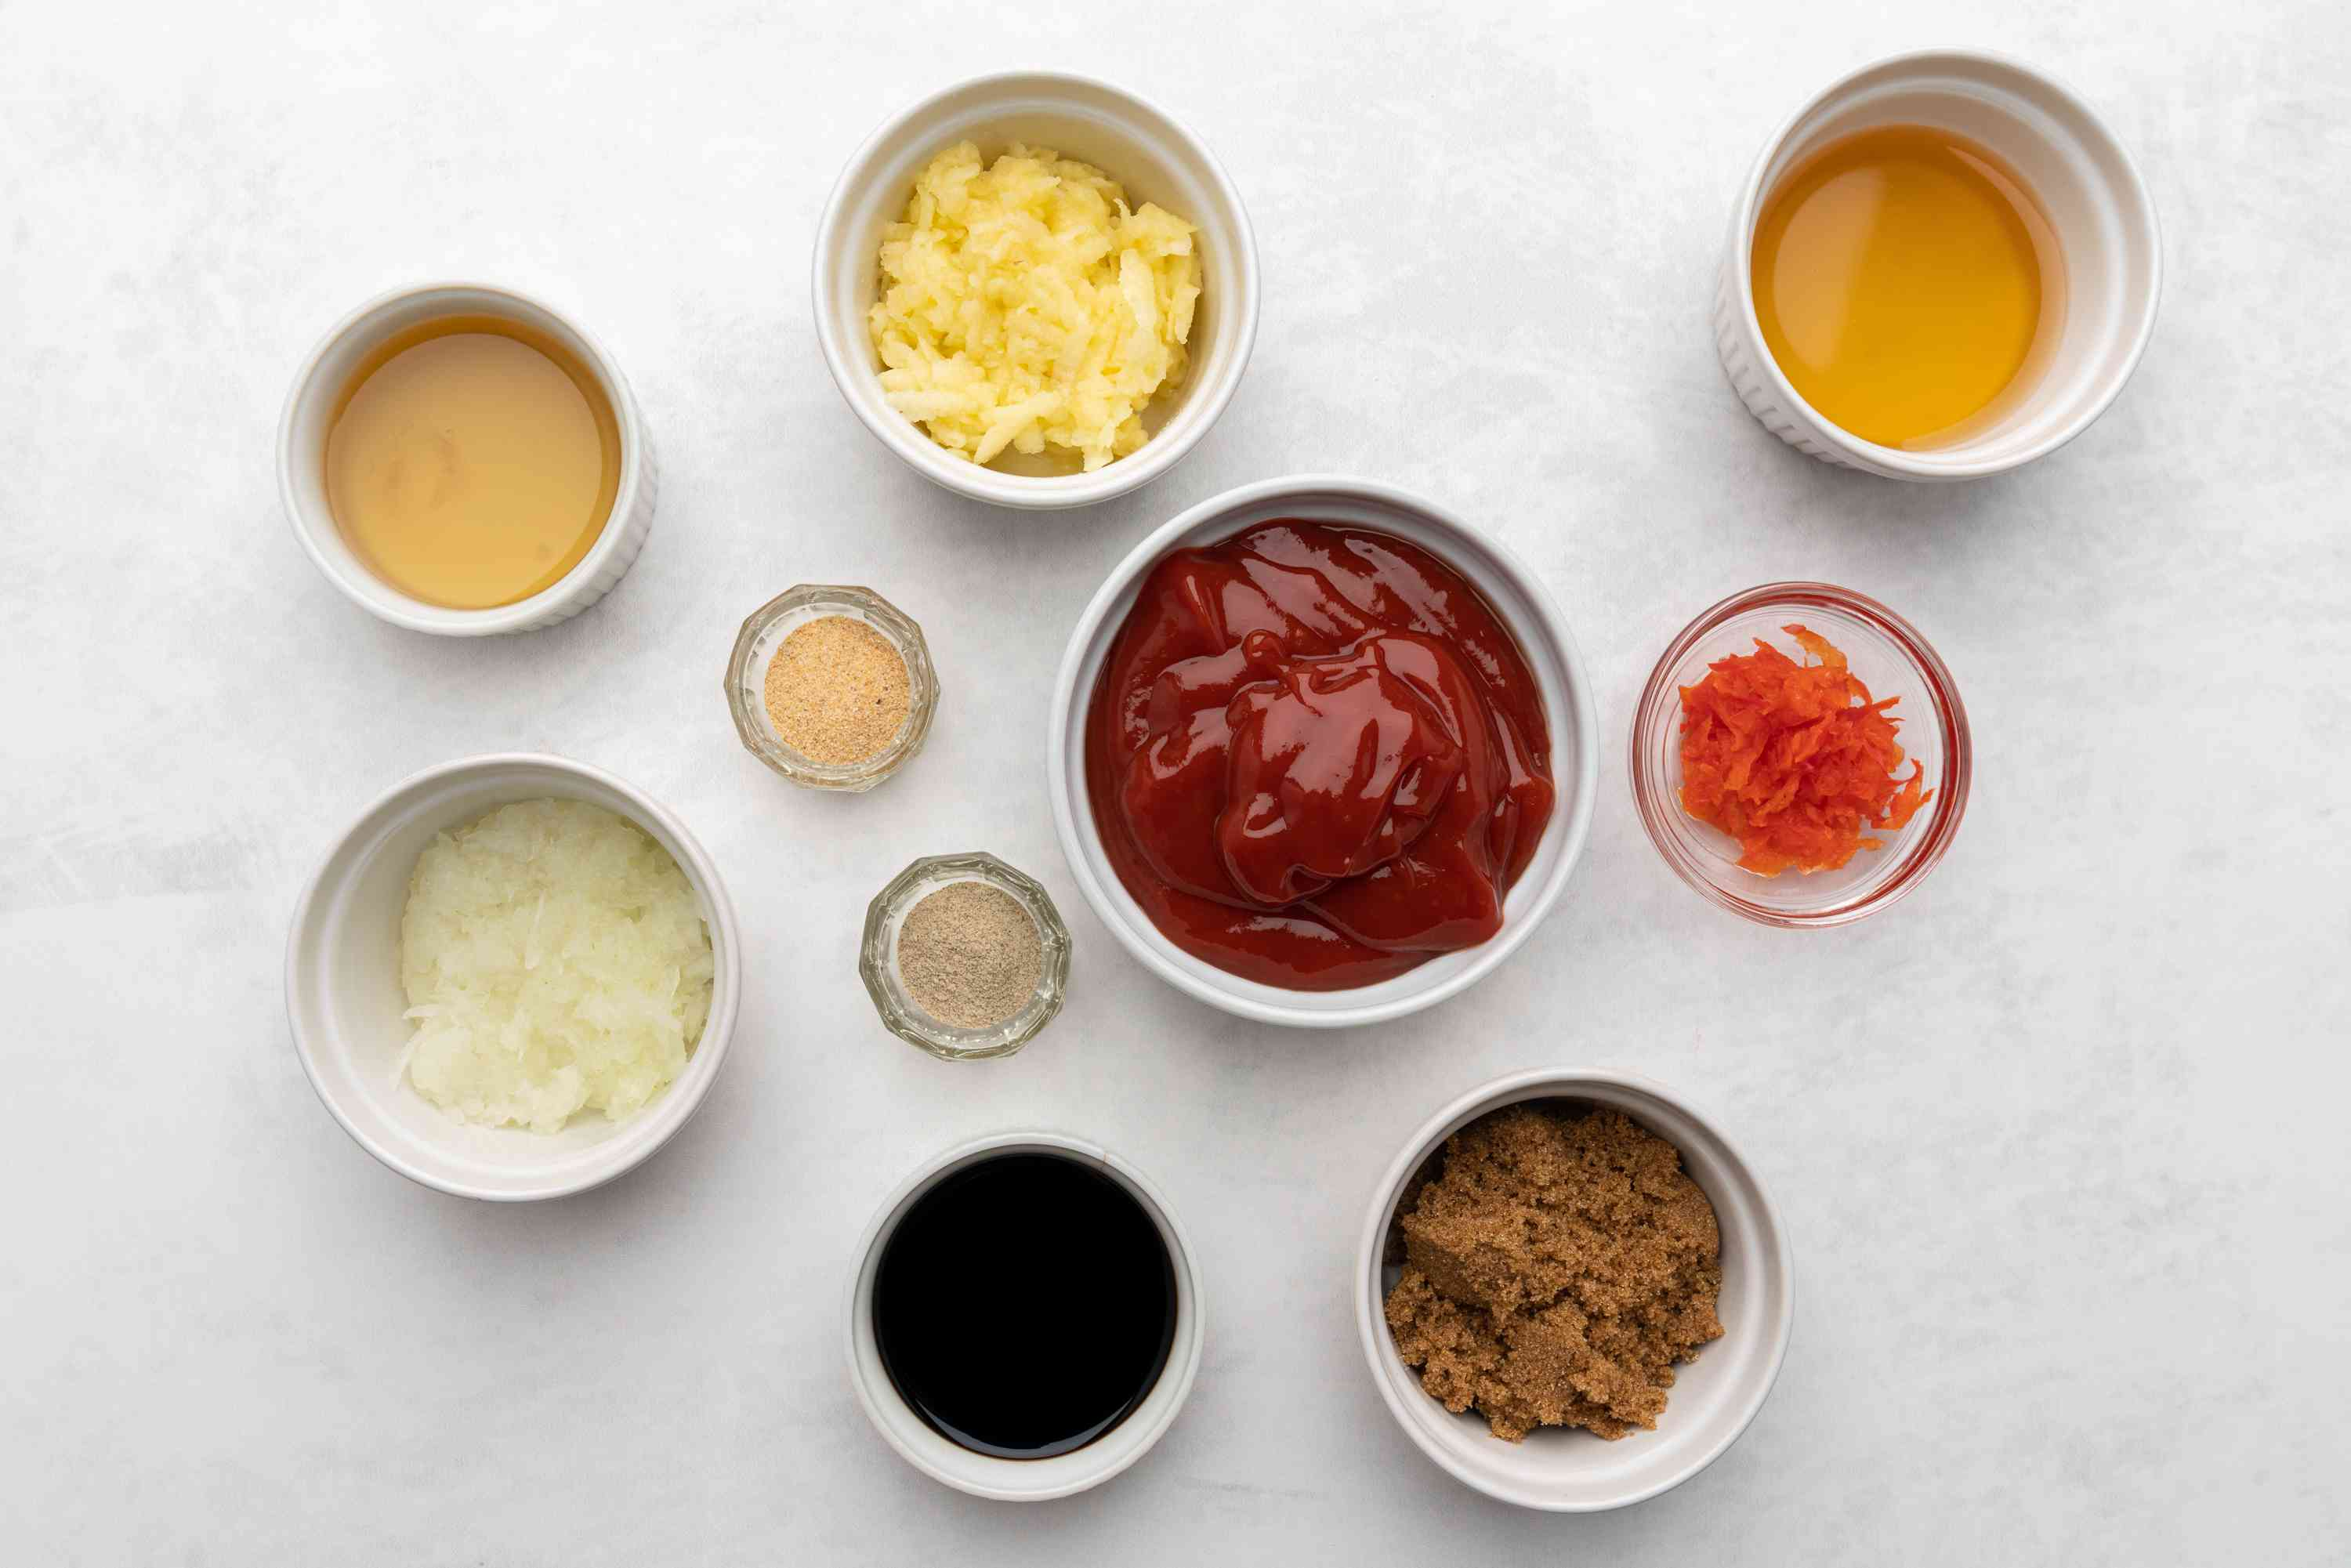 Apple Barbecue Sauce ingredients